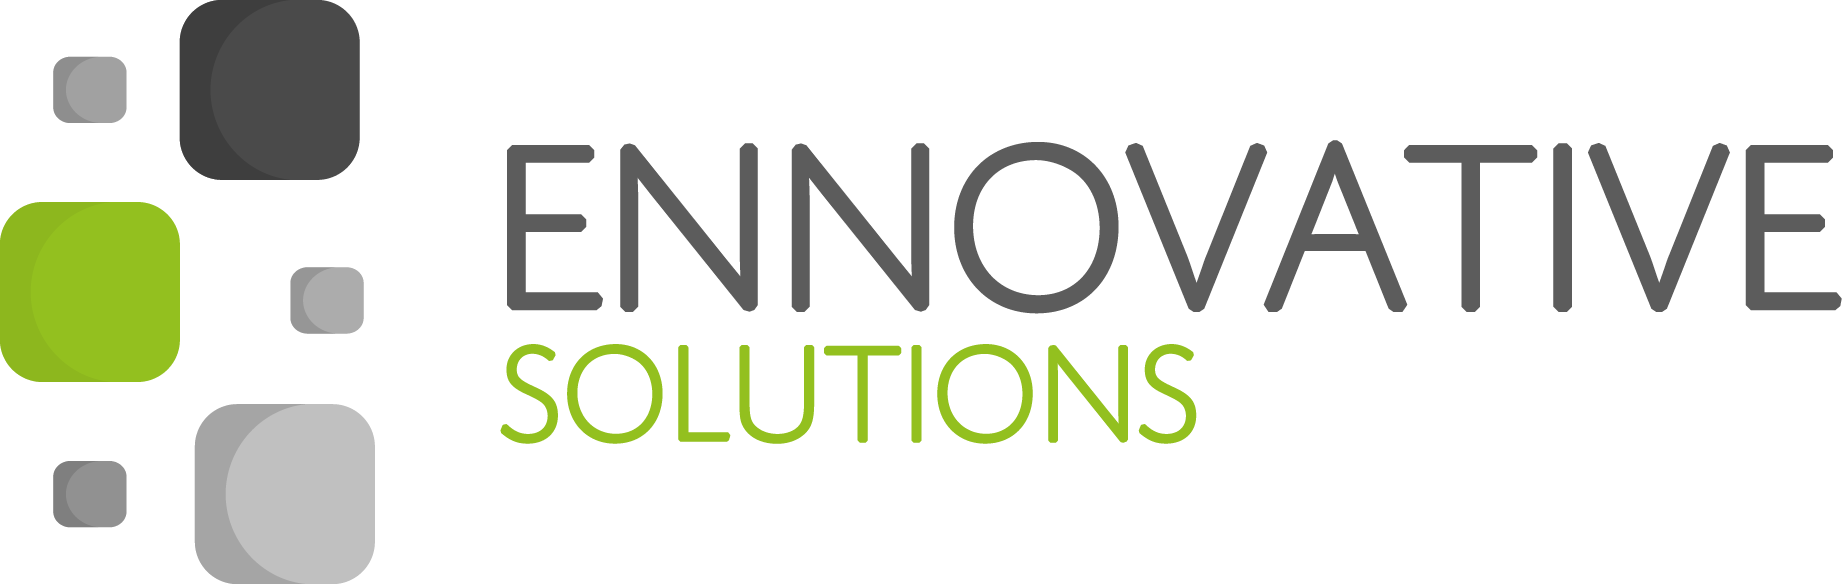 Ennovative Solutions